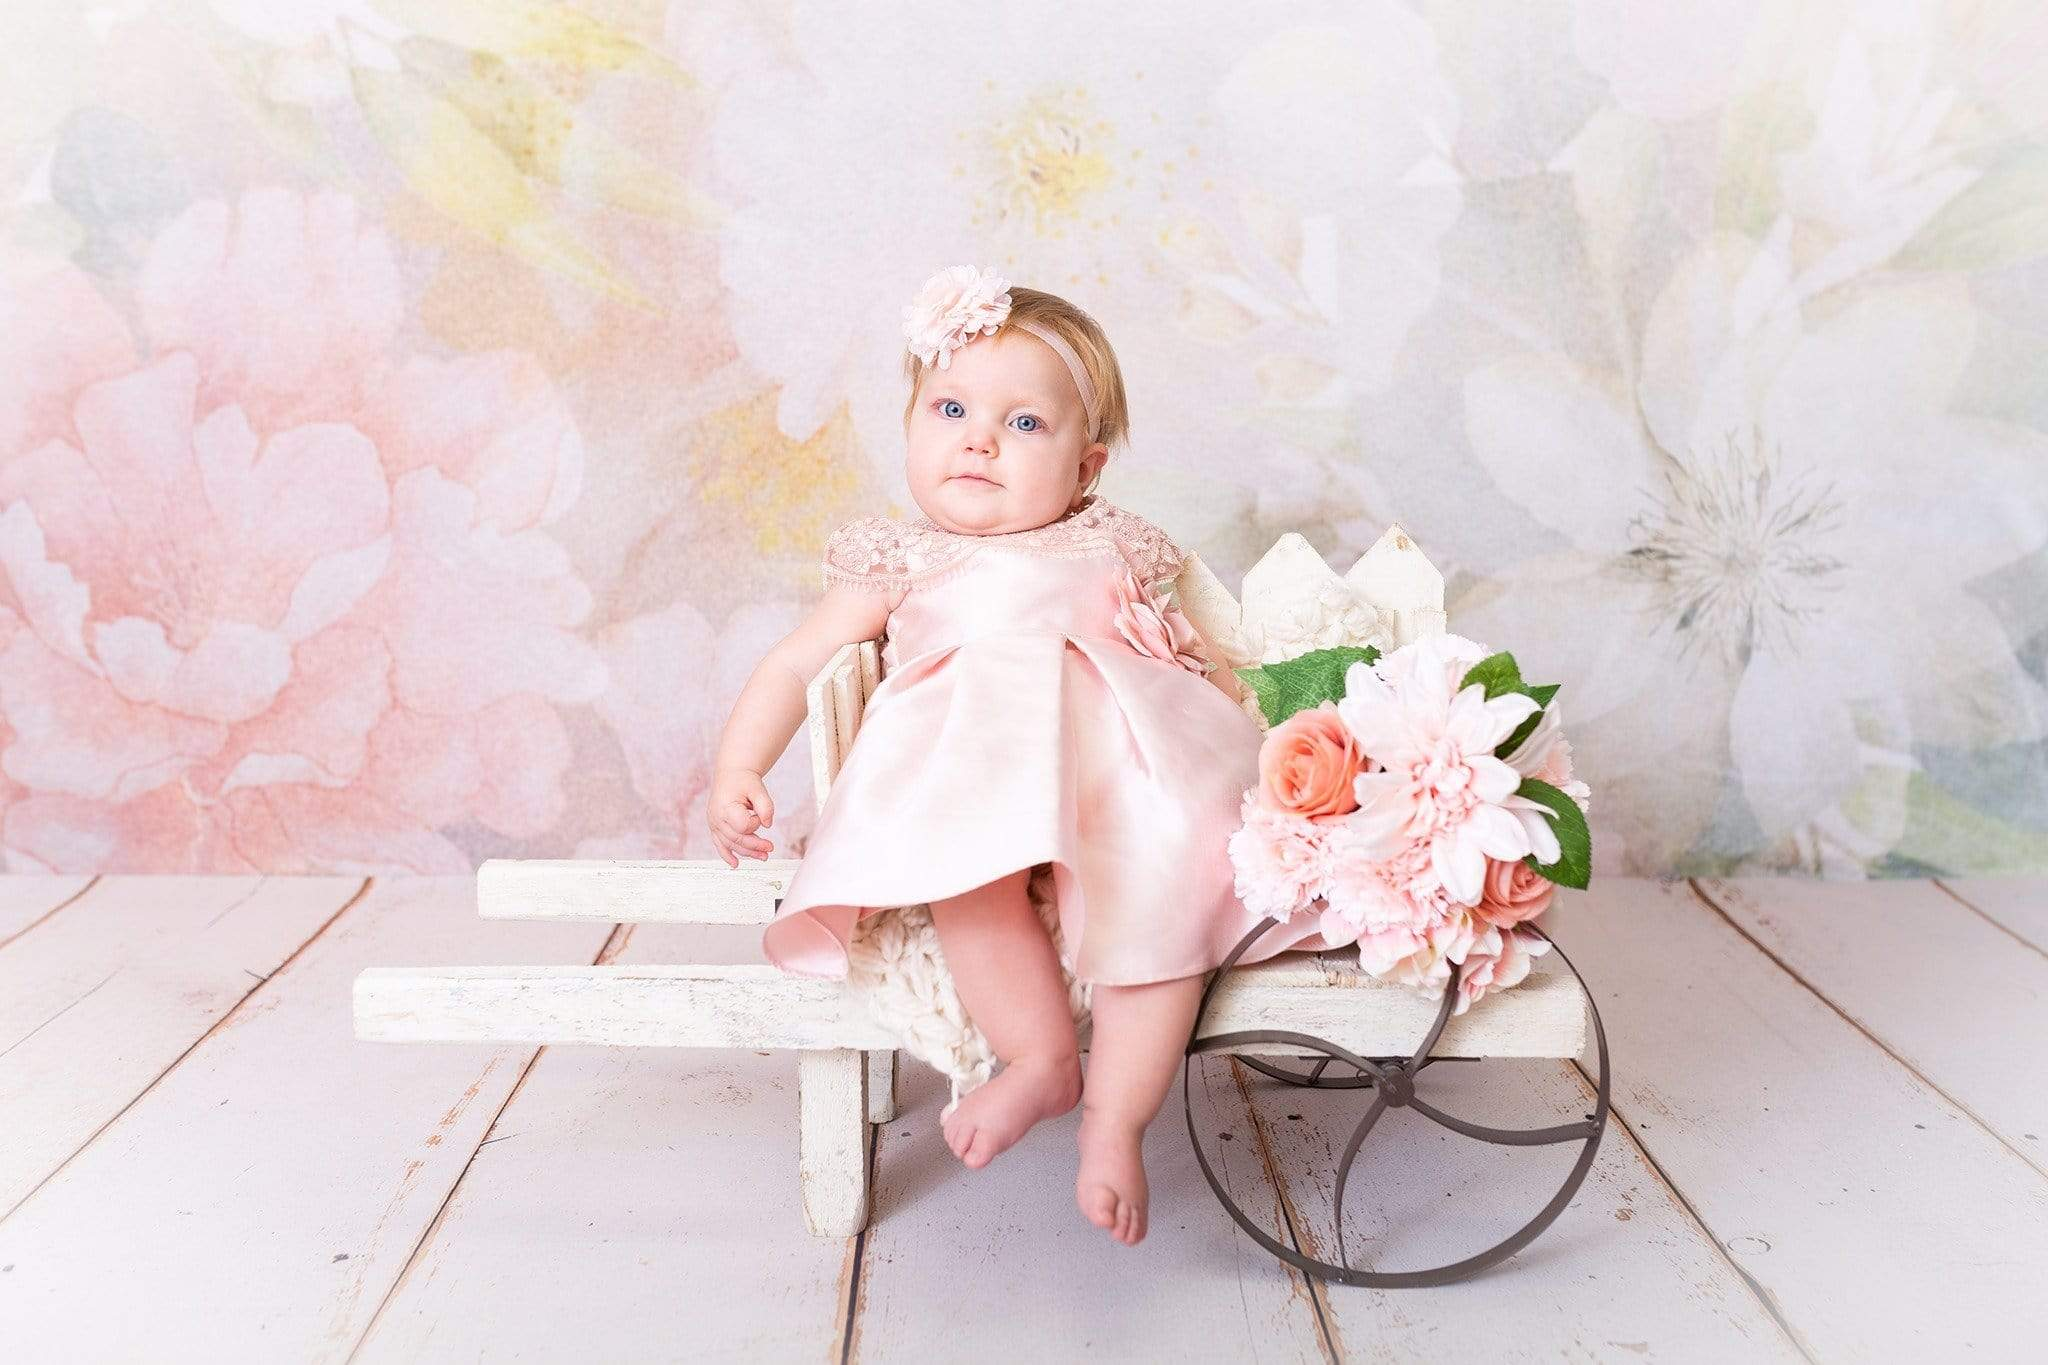 Load image into Gallery viewer, Kate Flowers Pastel Florals Backdrop for Photography Designed by Amanda Moffatt